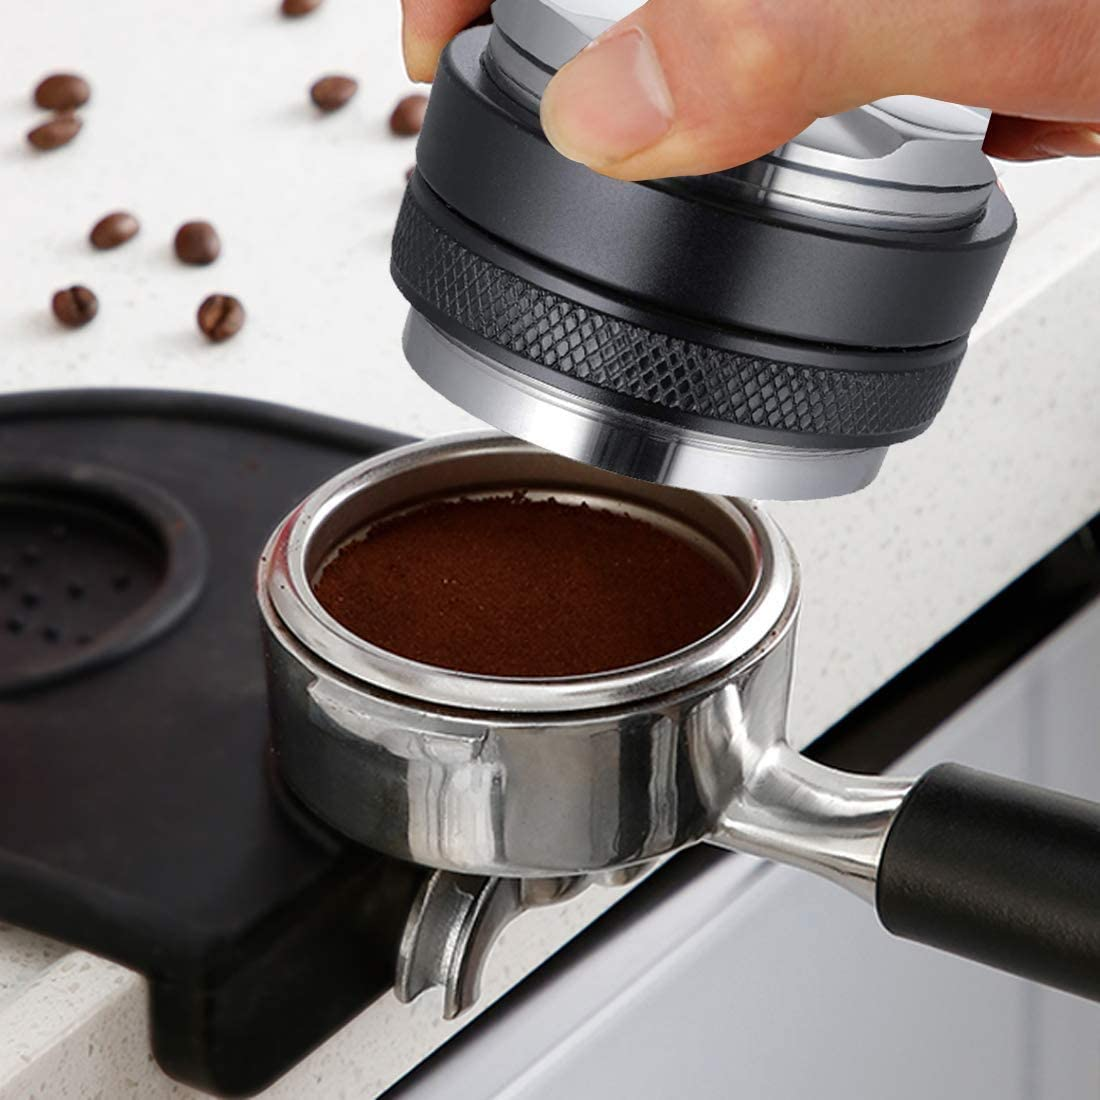 black-51mm 51mm Black Coffee Tamper 51mm Stainless Steel Coffee Distributor//Leveler Tool-New 3 Leaf Clover Base Palm Tampers Coffee Leveler Macaroon Tamper Proof for Espresso Coffee Grounds